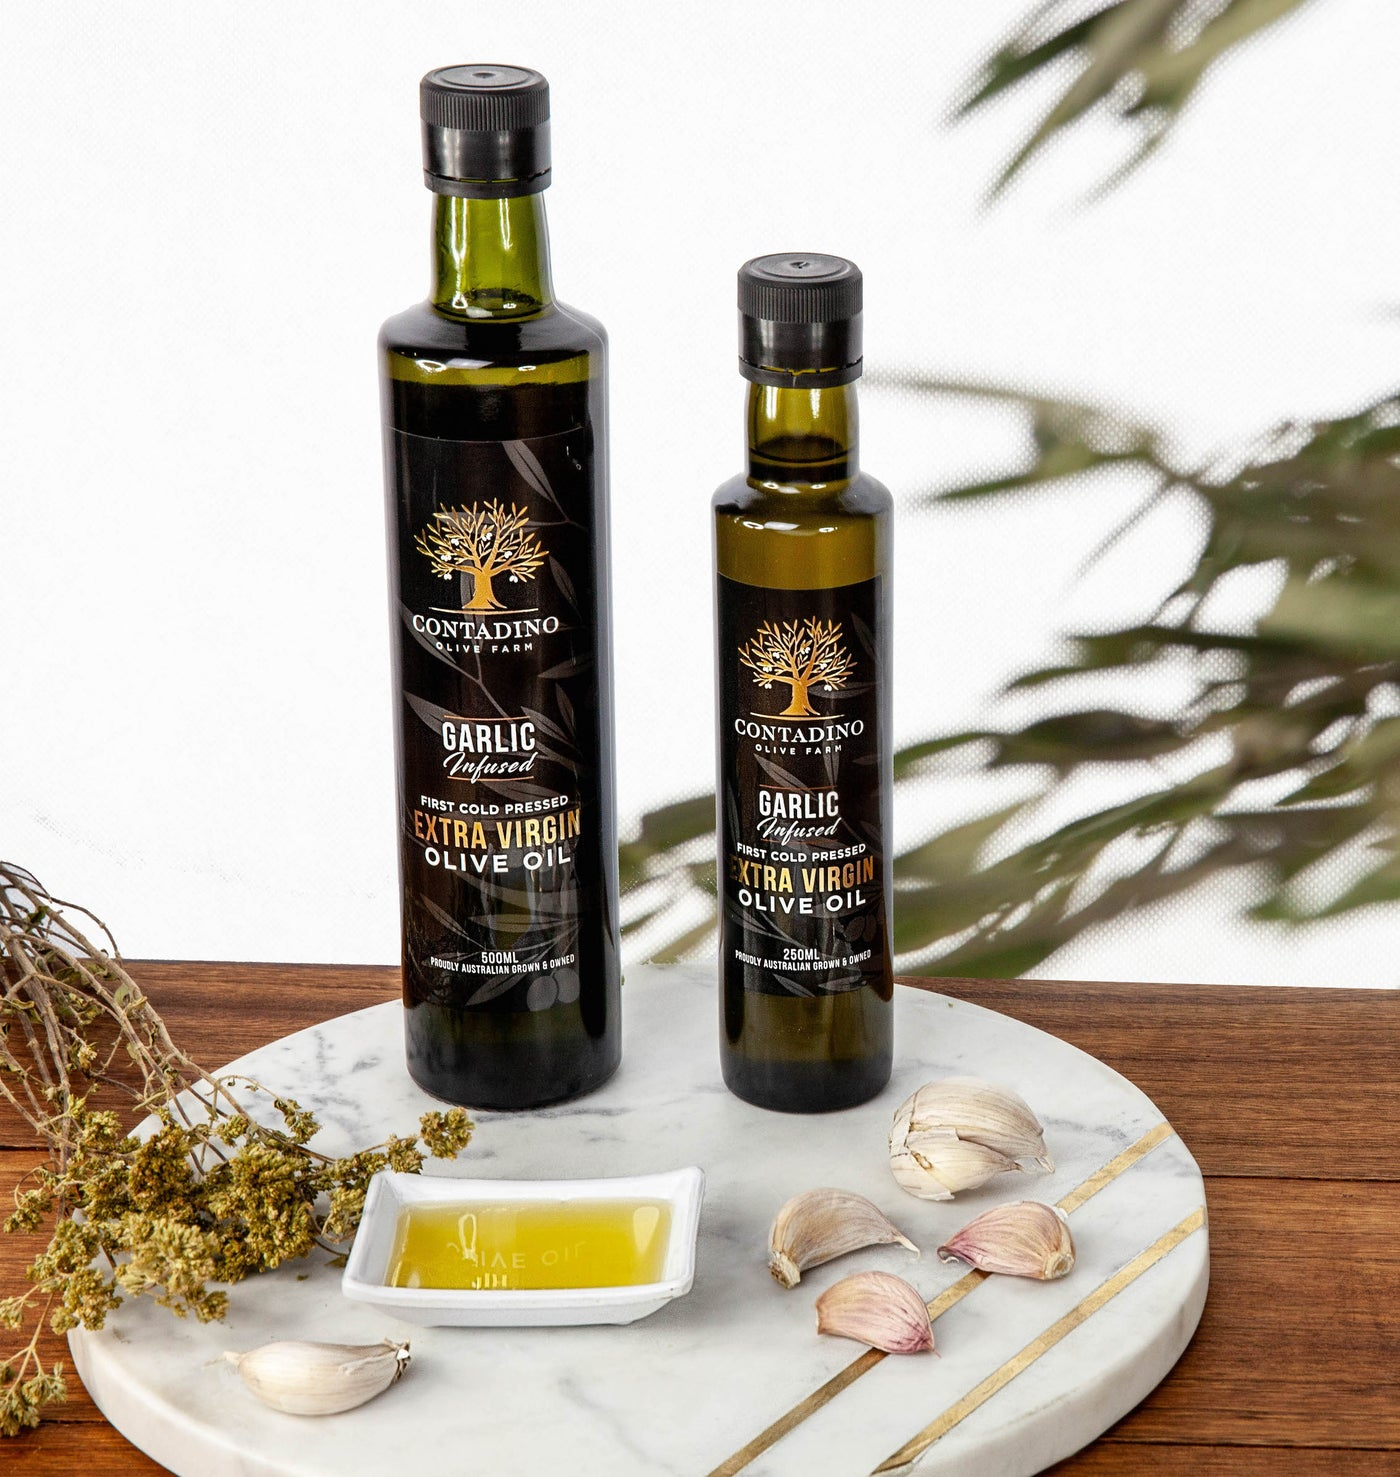 Australian Extra Virgin Olive Oil Garlic Infused - 250ml